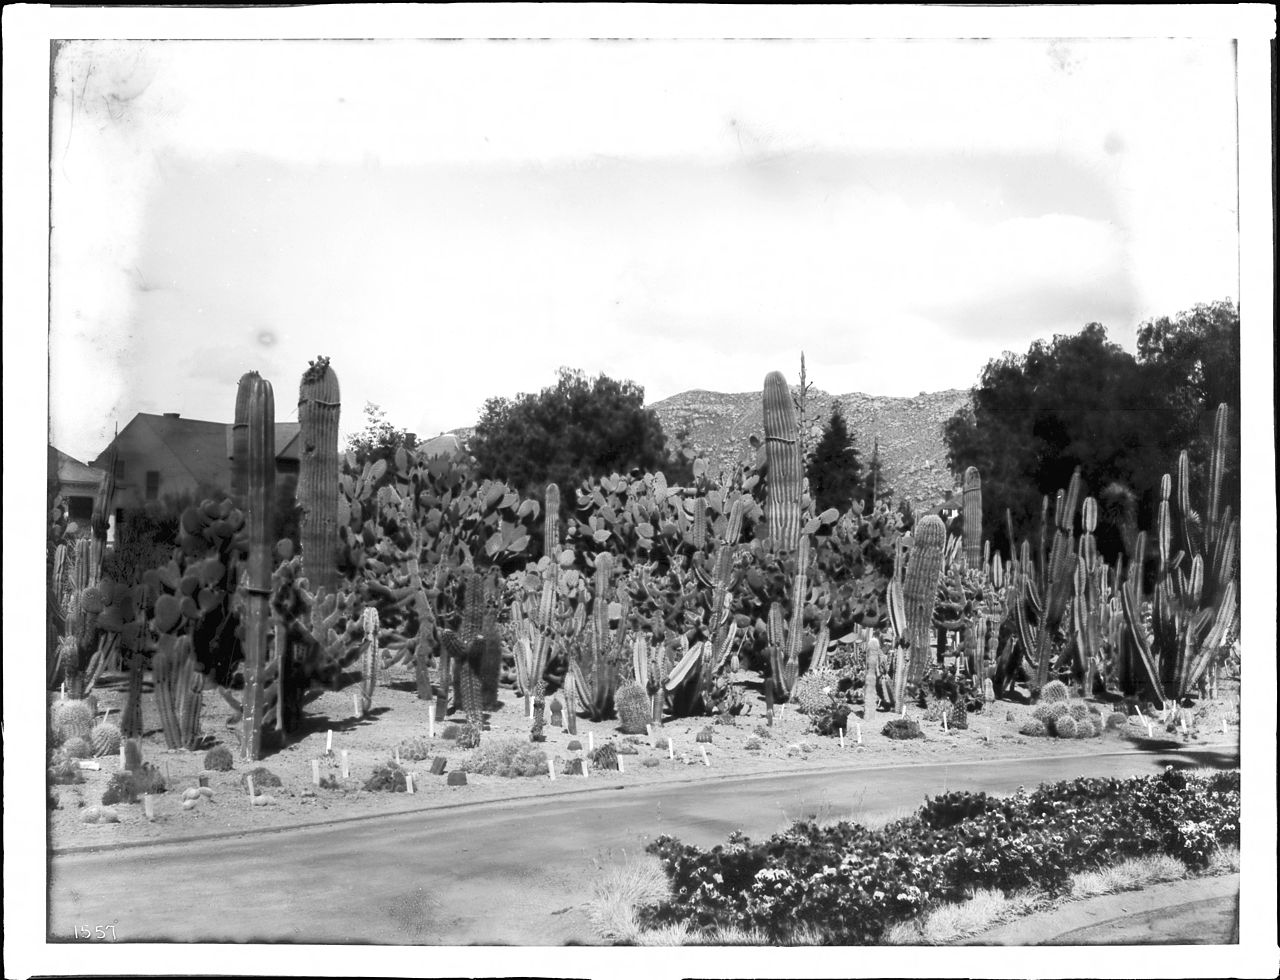 Call From A Different Number >> File:Cactus garden at Riverside, California, ca.1920 (CHS-1557).jpg - Wikimedia Commons